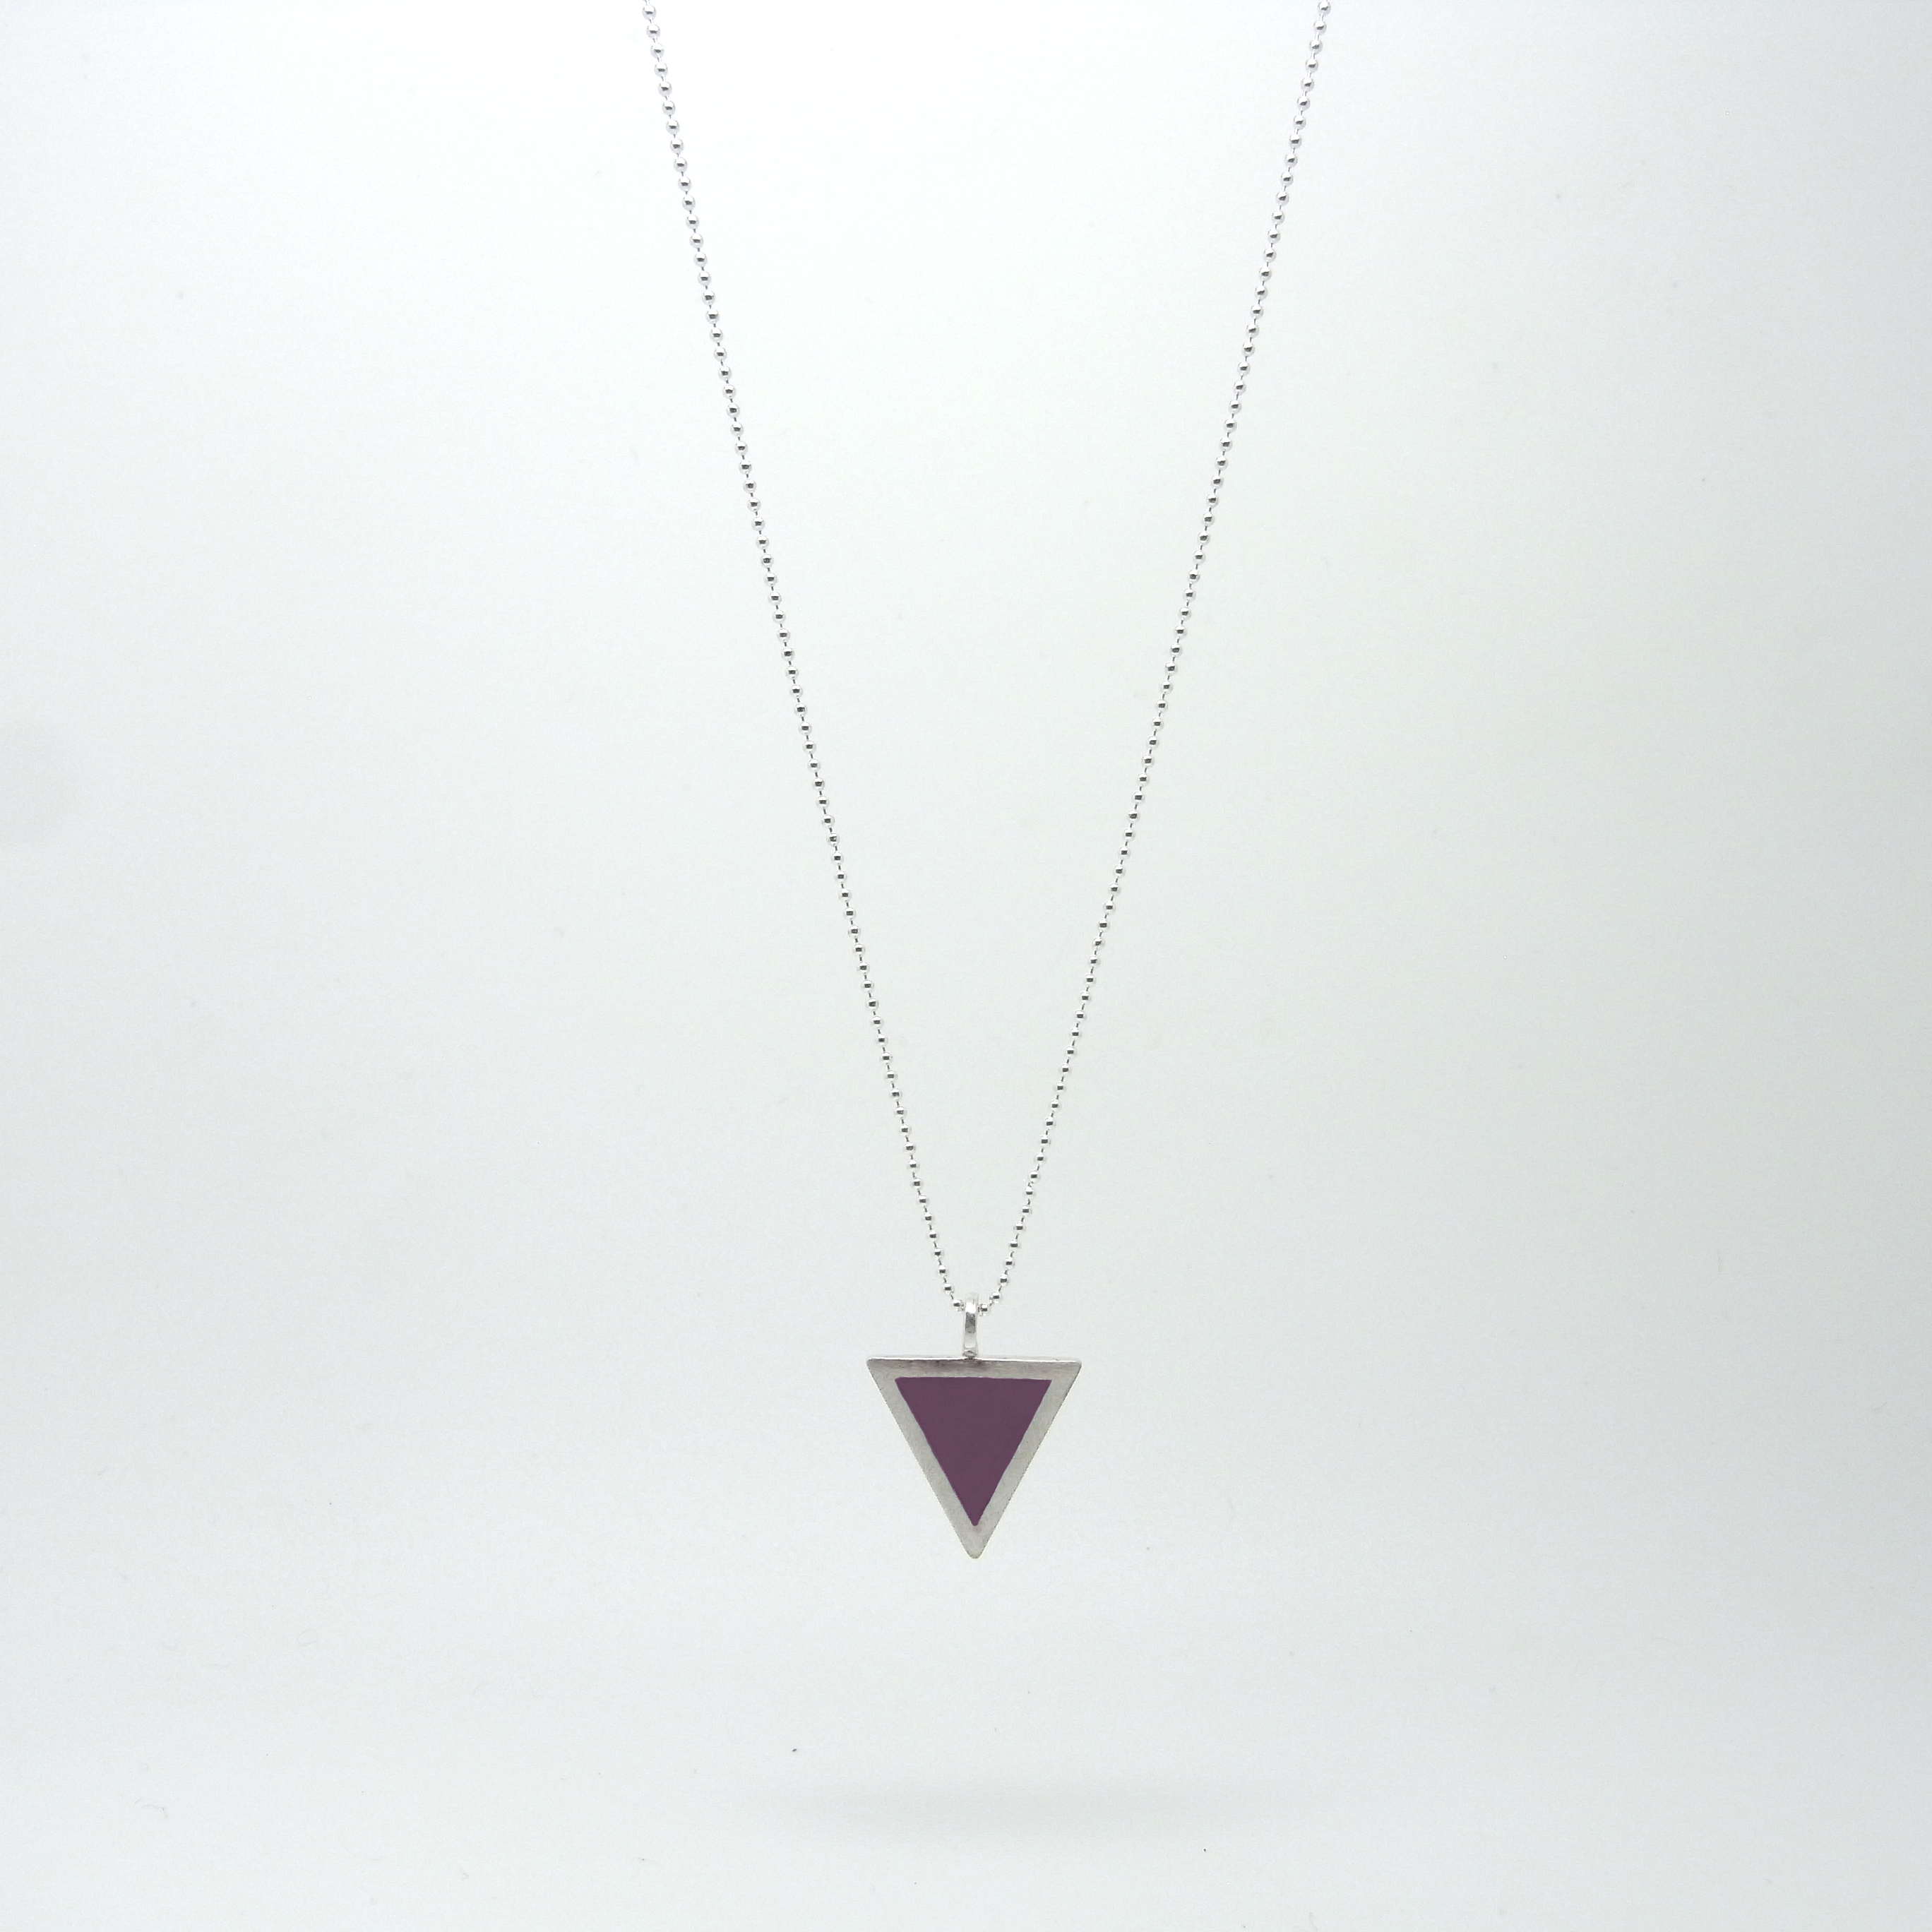 Triangle Necklace (made to order)